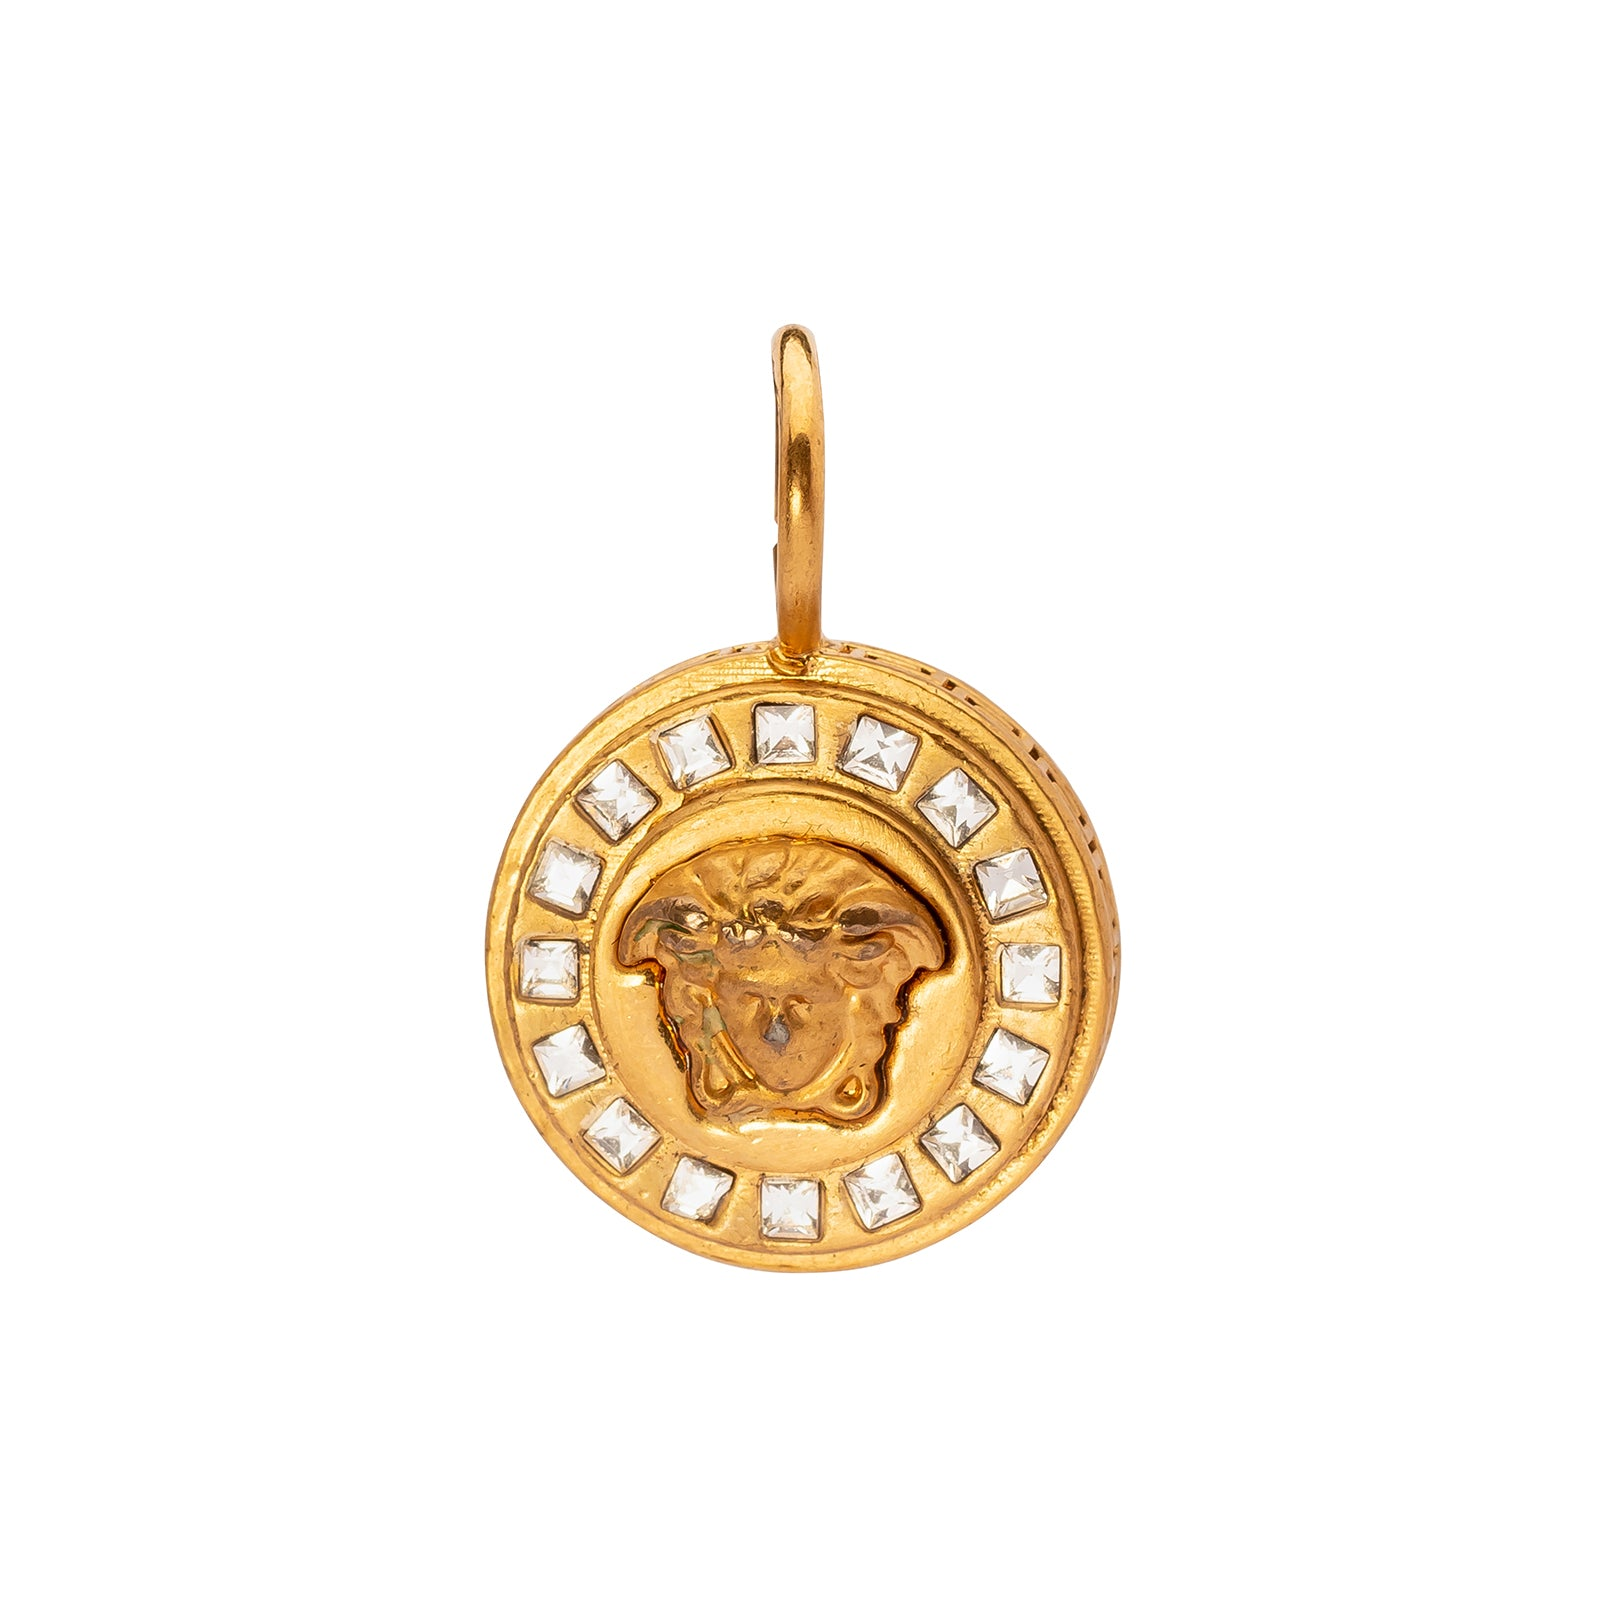 Antique & Vintage Jewelry Versace Medusa Charm - Charms & Pendants - Broken English Jewelry